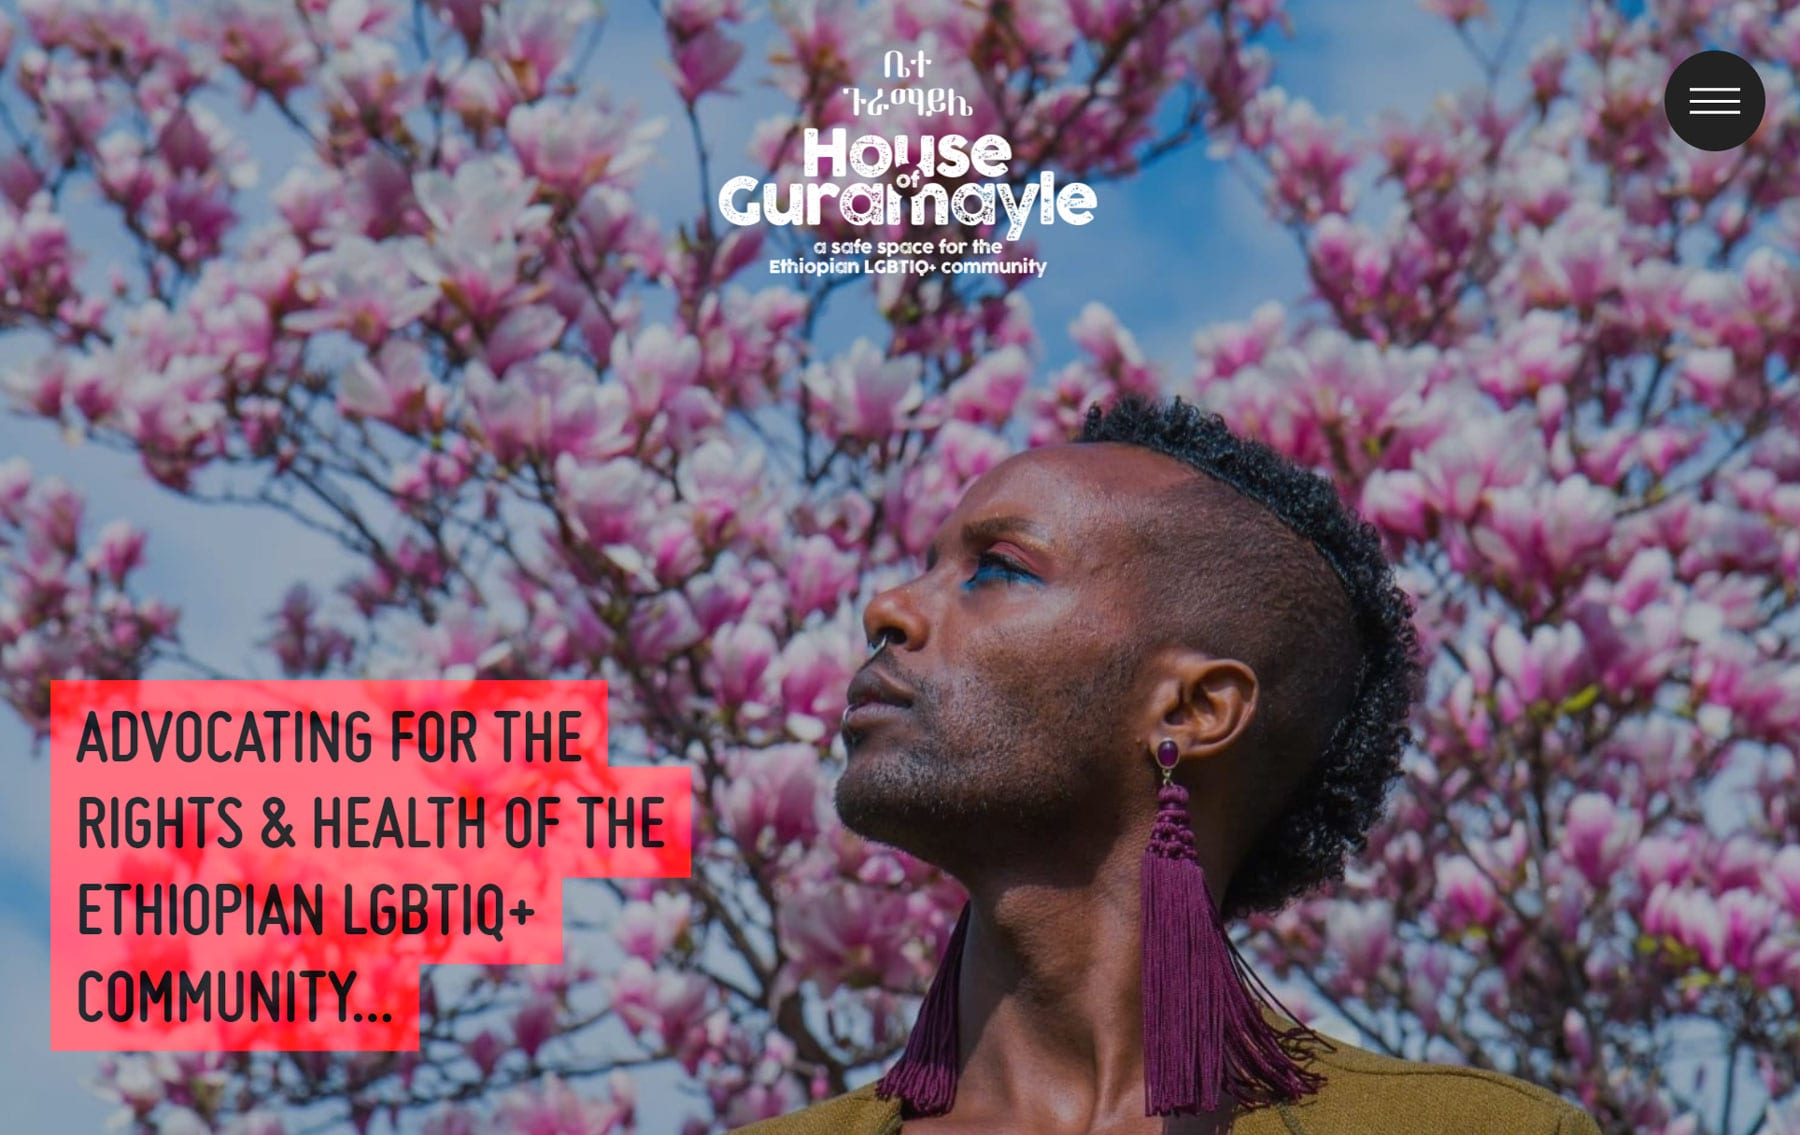 House-of-Guramayle---a-safe-space-for-the-Ethiopian-LGBTIQ--community